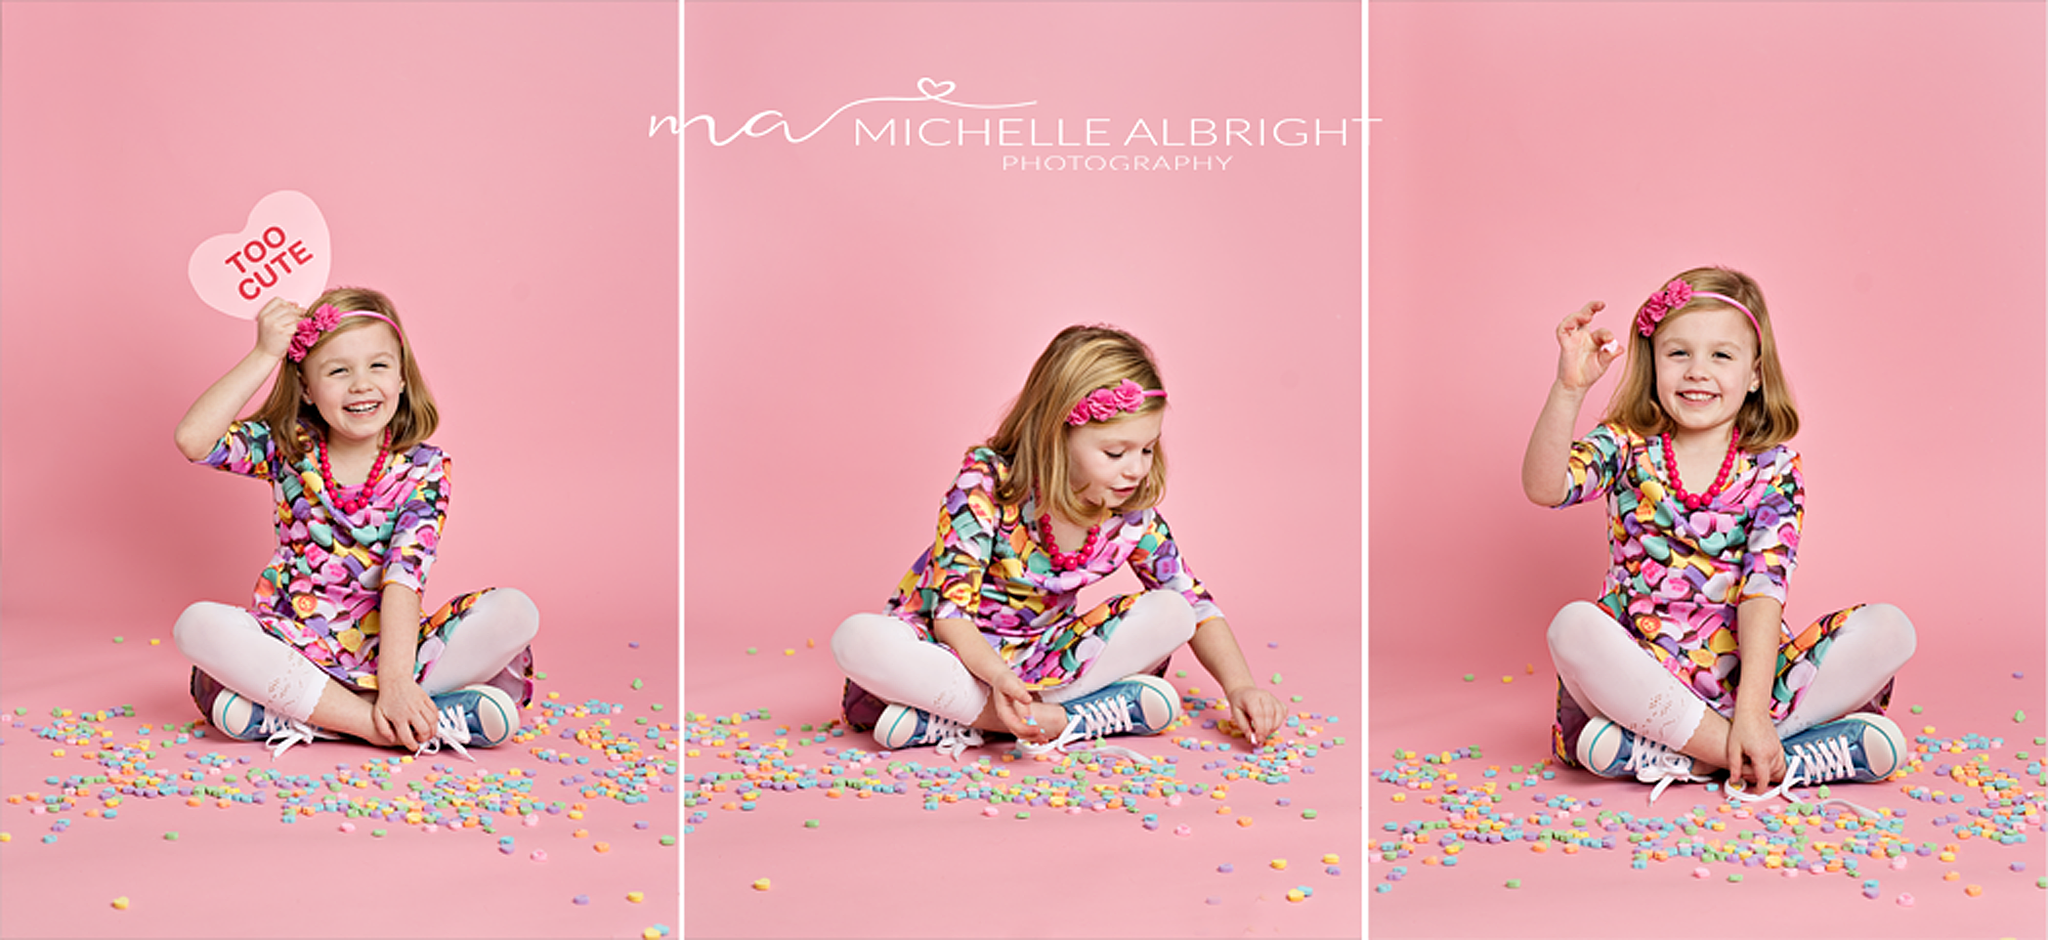 michelle albright photography valentine 4.png